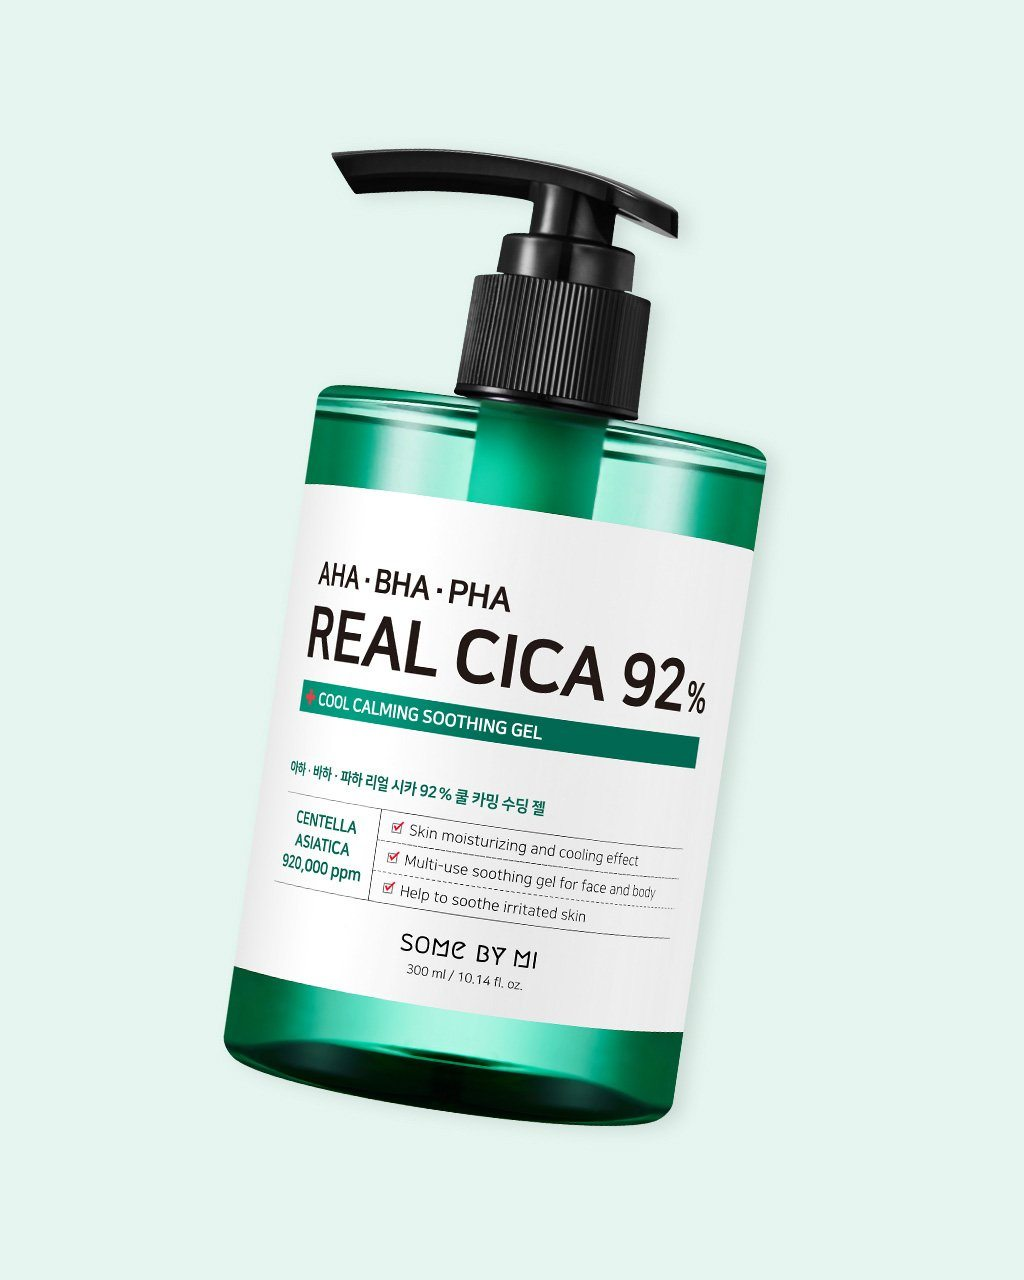 AHA-BHA-PHA Real Cica 92% Cool Calming Soothing Gel